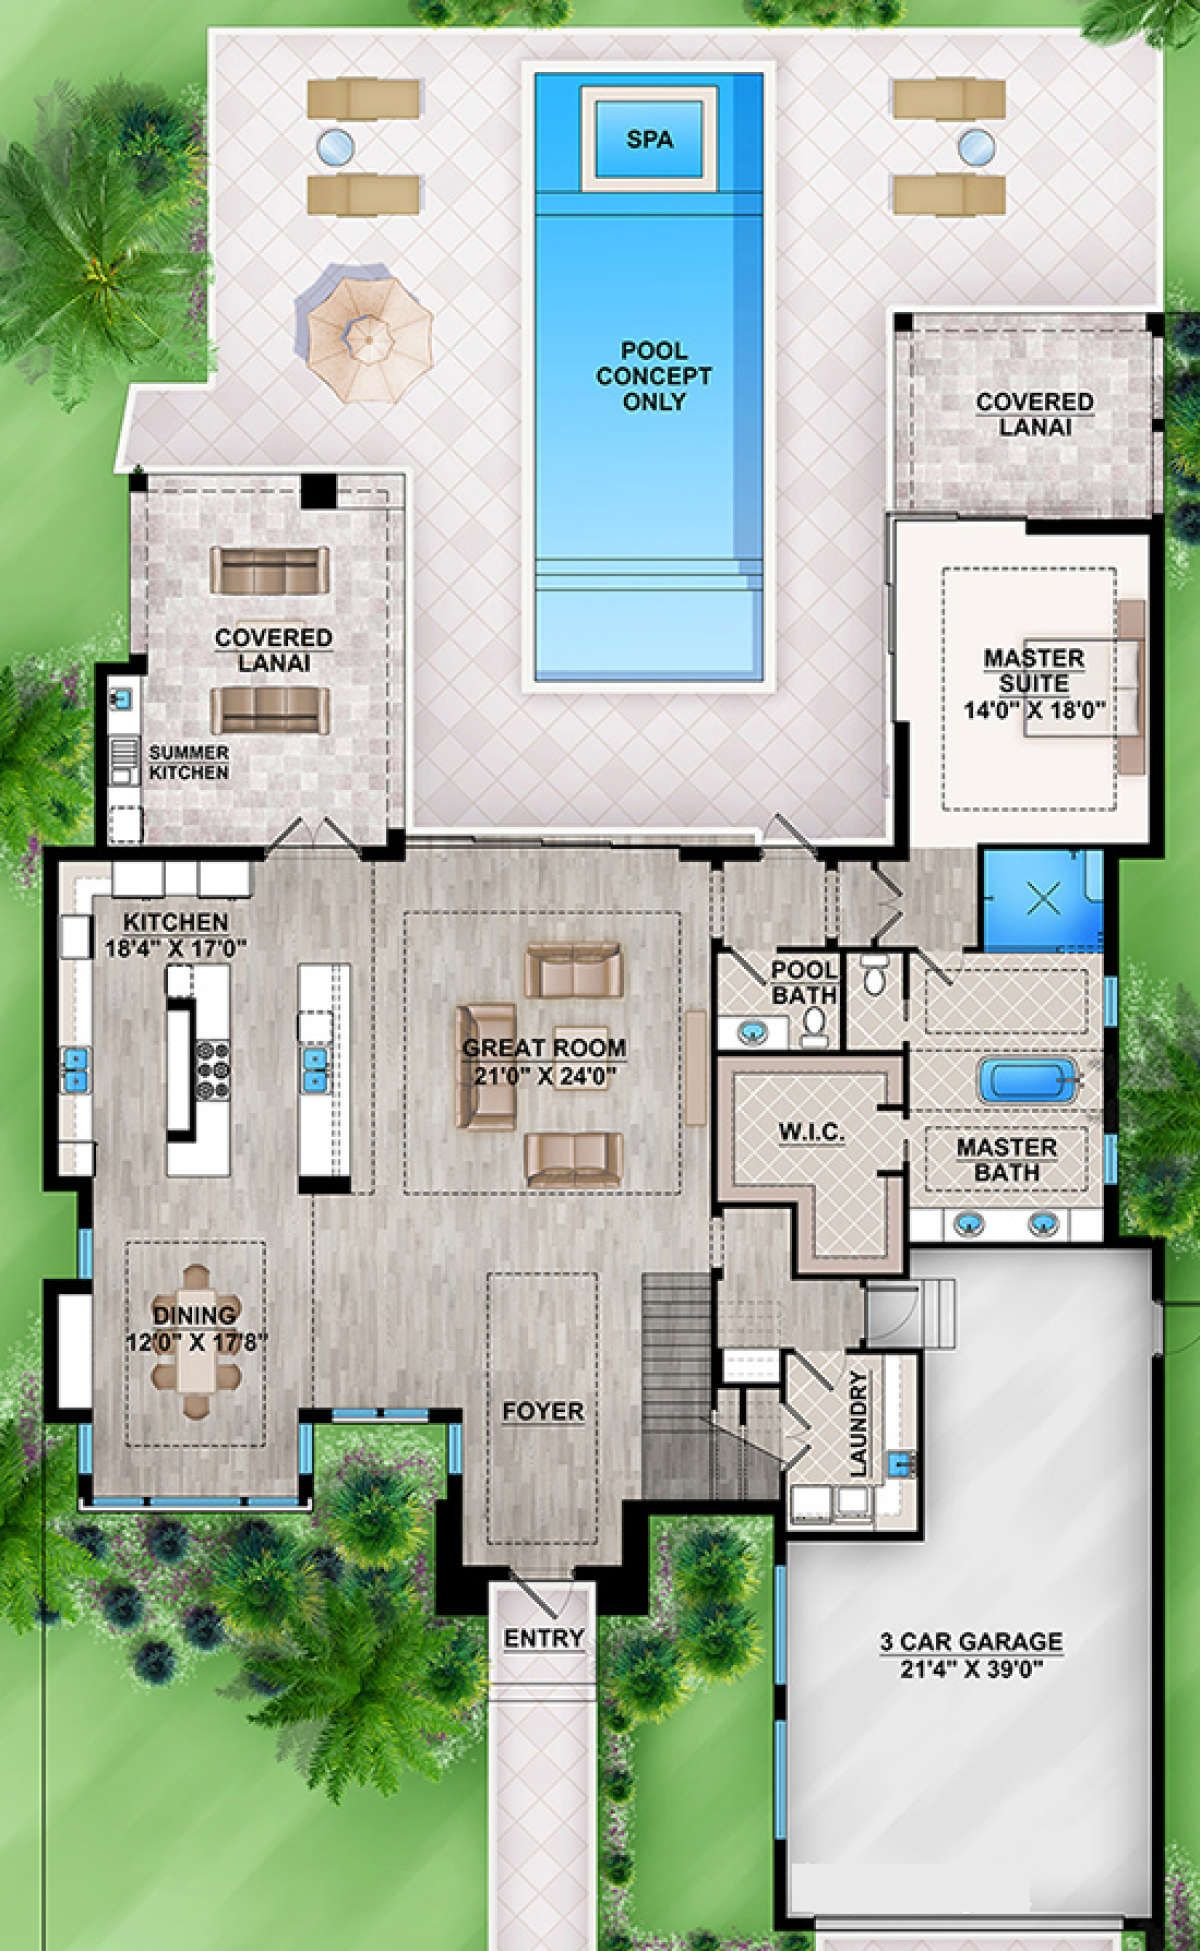 House Plan 207 00036 Mid Century Modern Plan 3 730 Square Feet 3 Bedrooms 3 5 Bathrooms Mid Century Modern House Plans Modern Floor Plans Modern House Plans